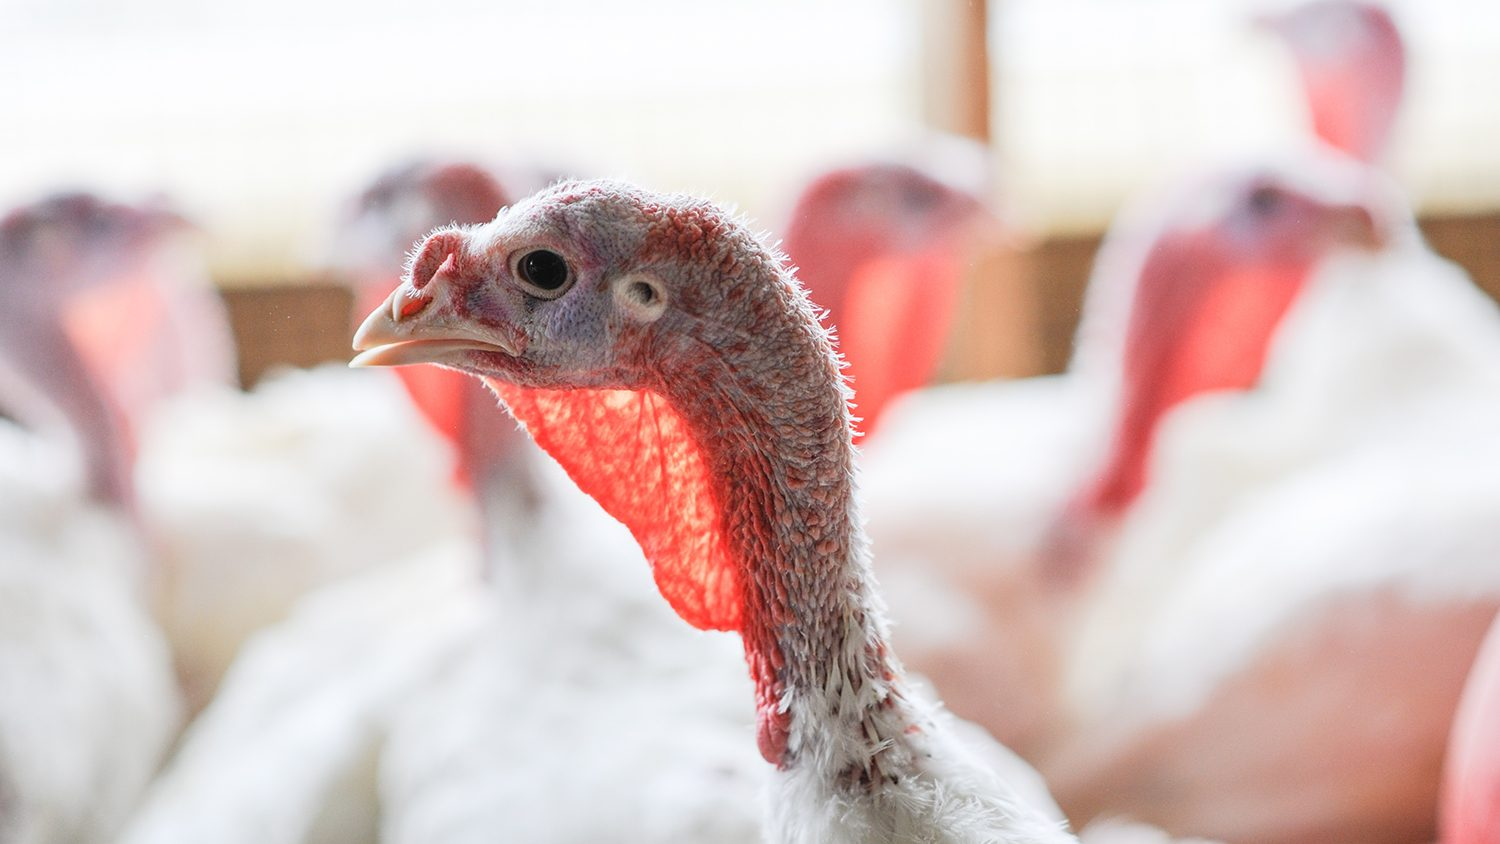 Close shot of a turkey in poultry building with white feathers.